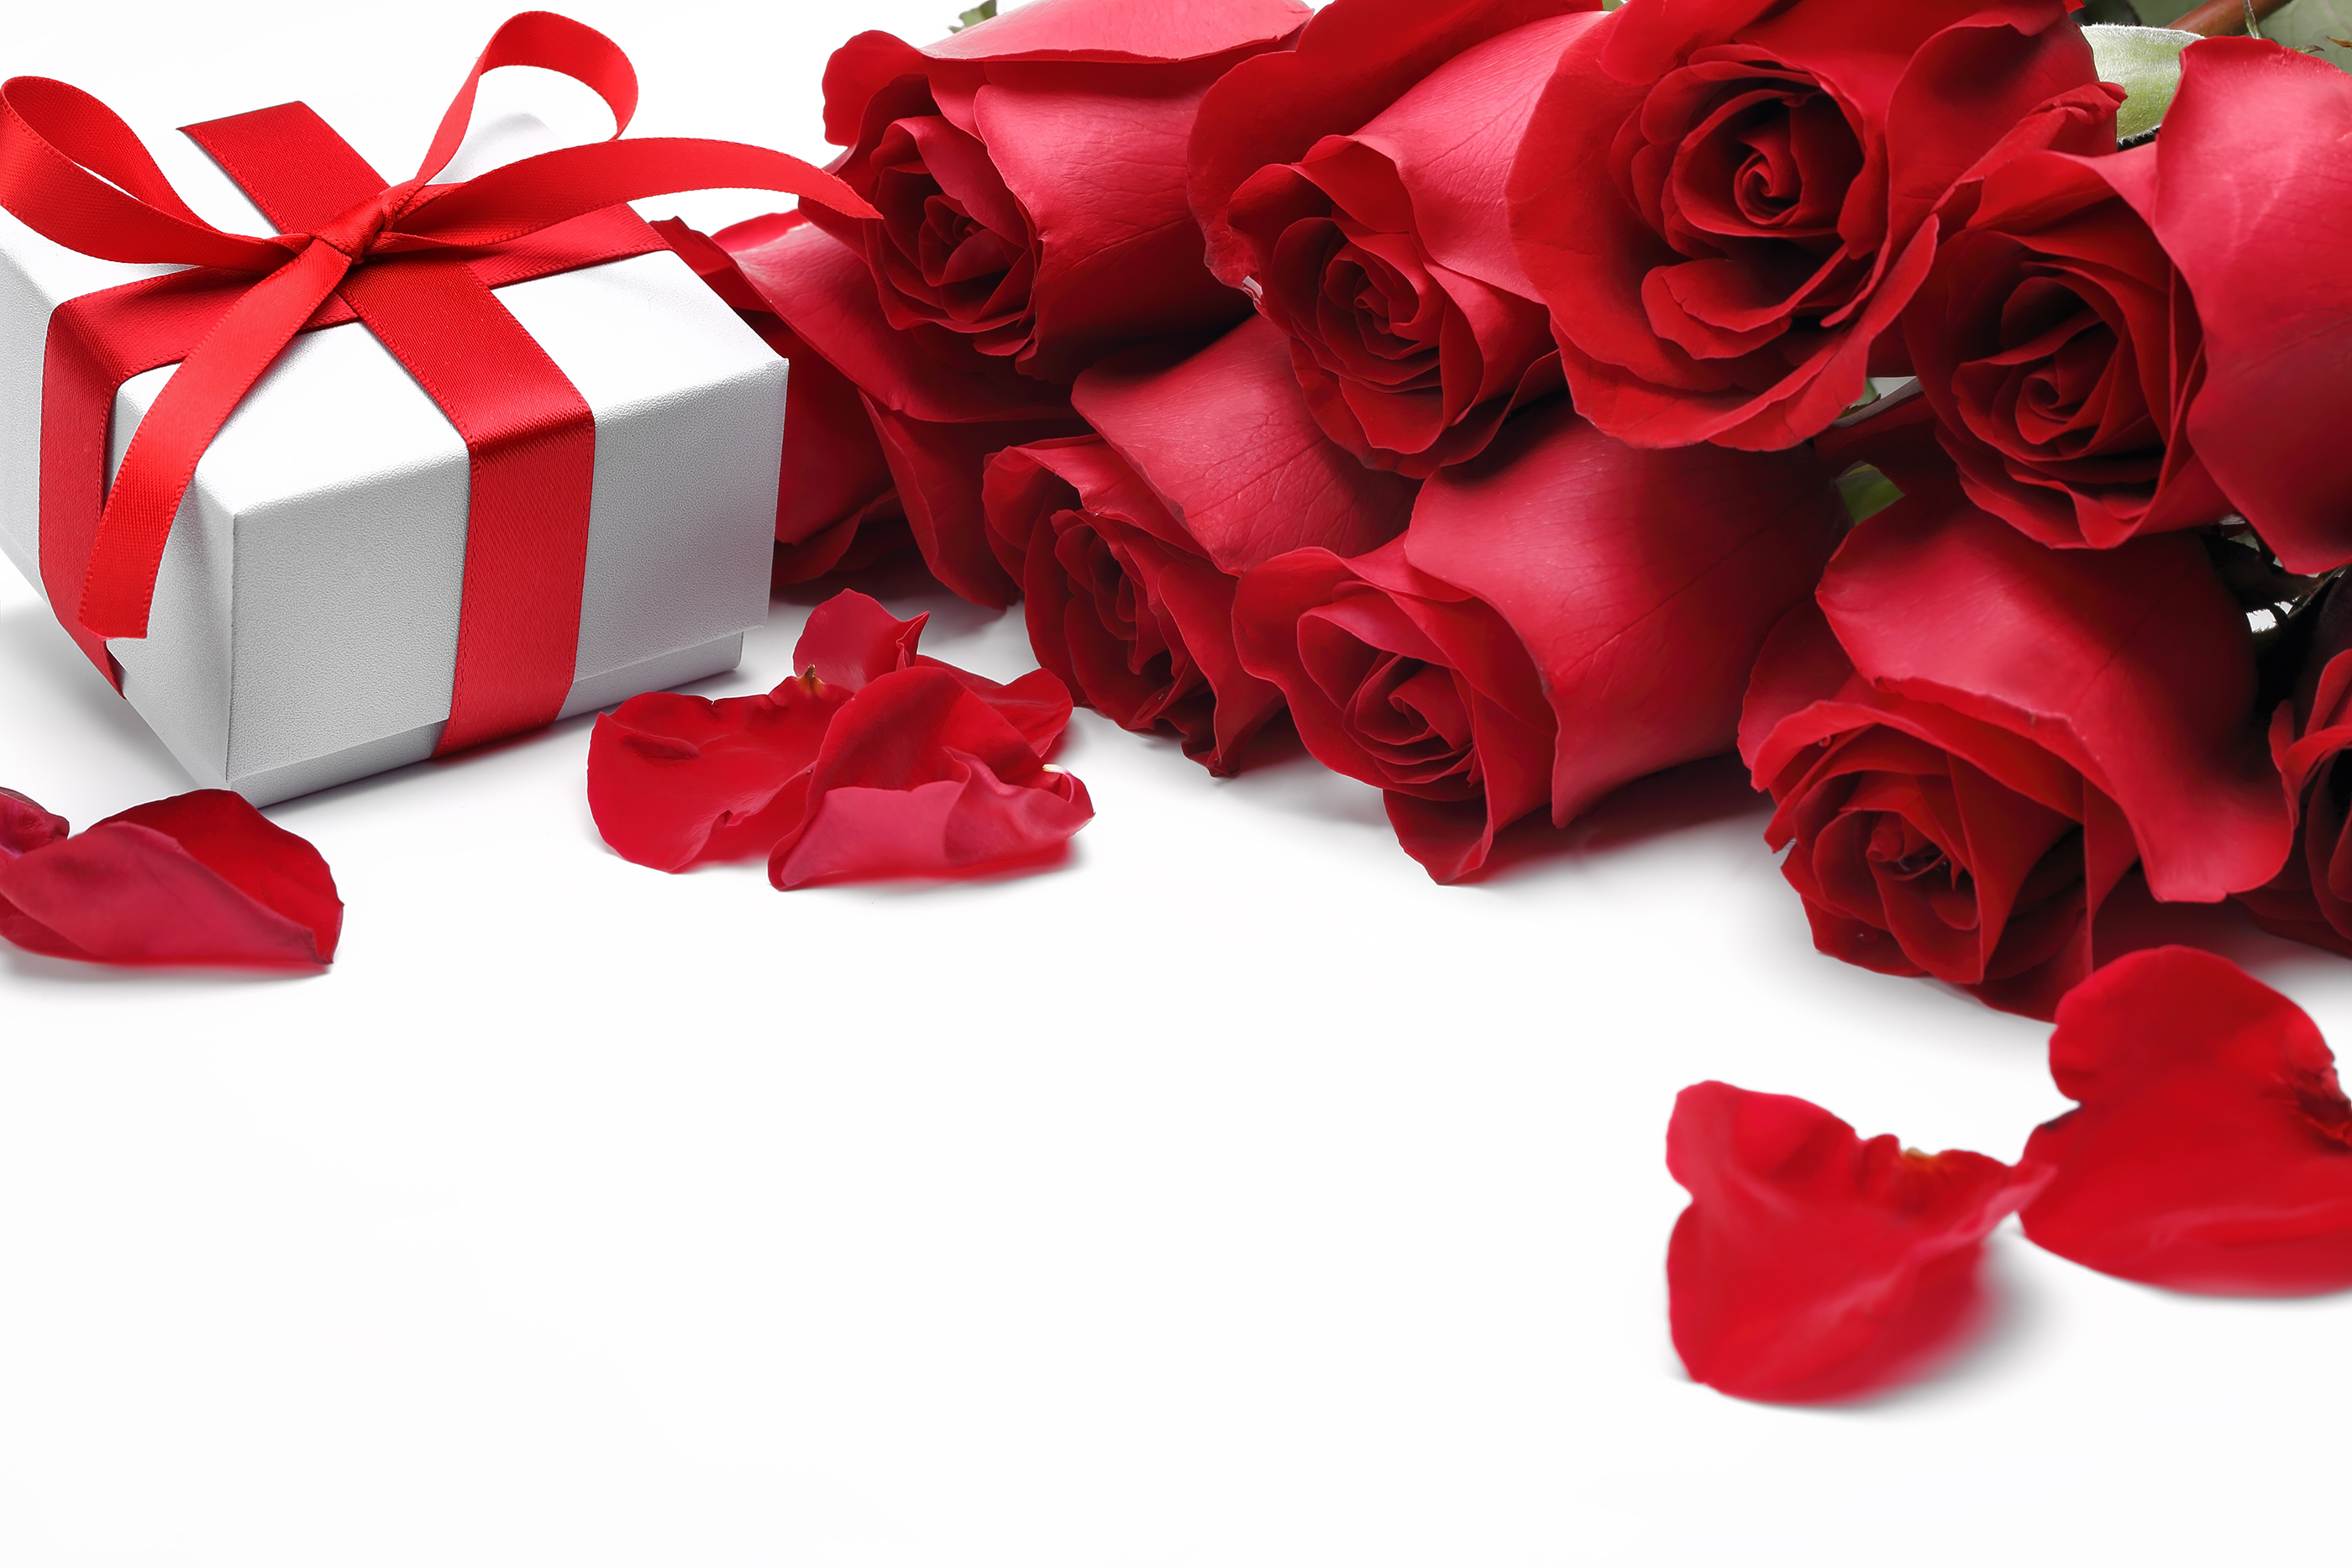 Rose flower and gift box 54893